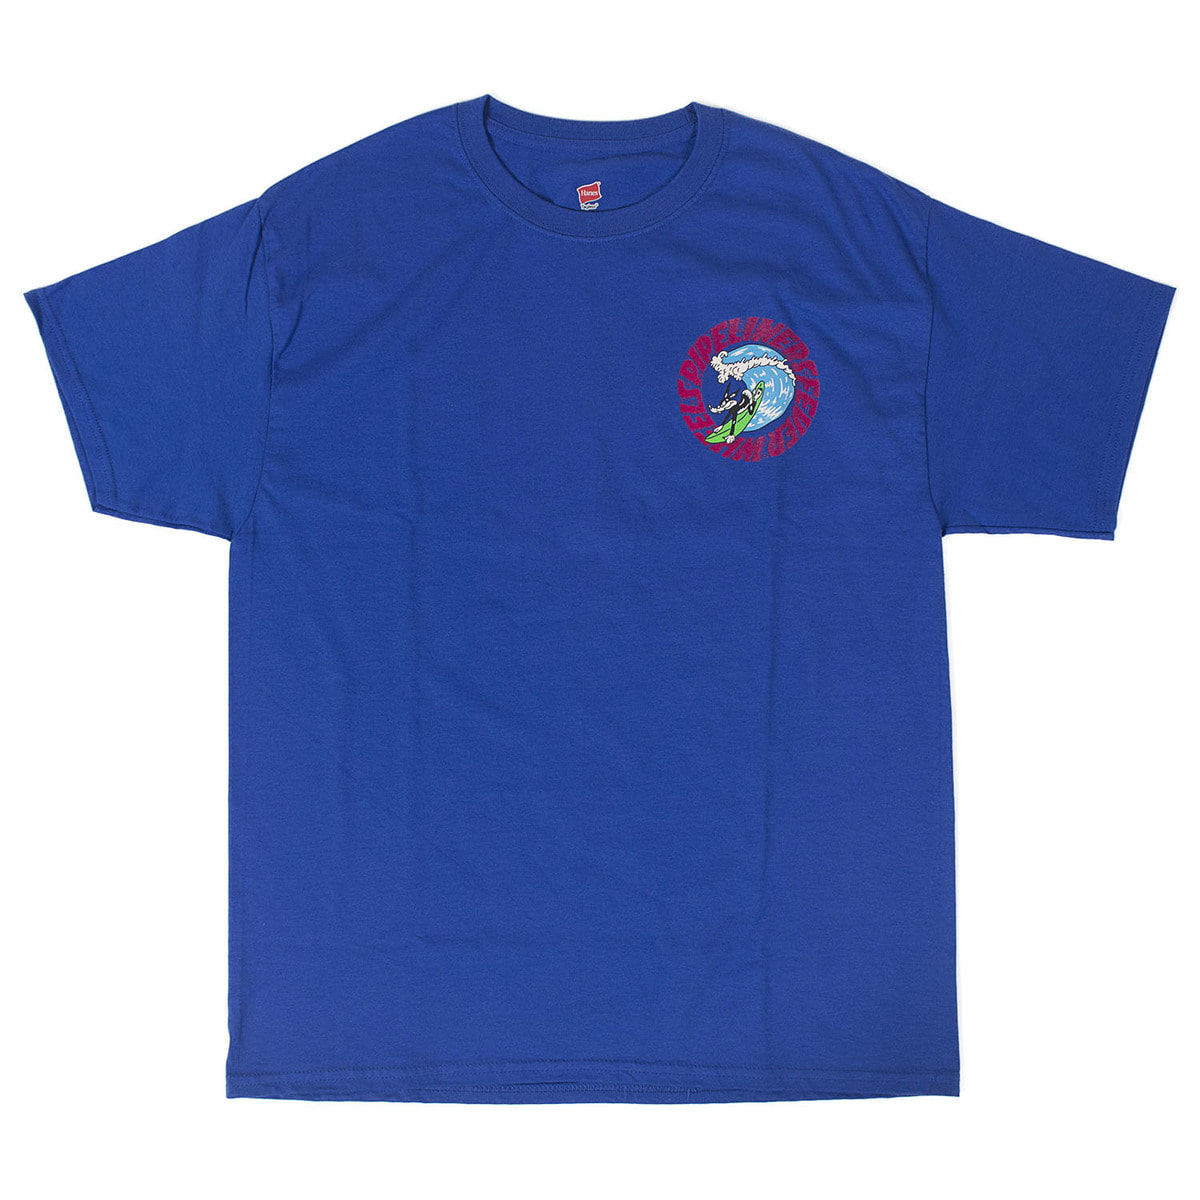 Fever Pipeliners Fever Tee (Blue)